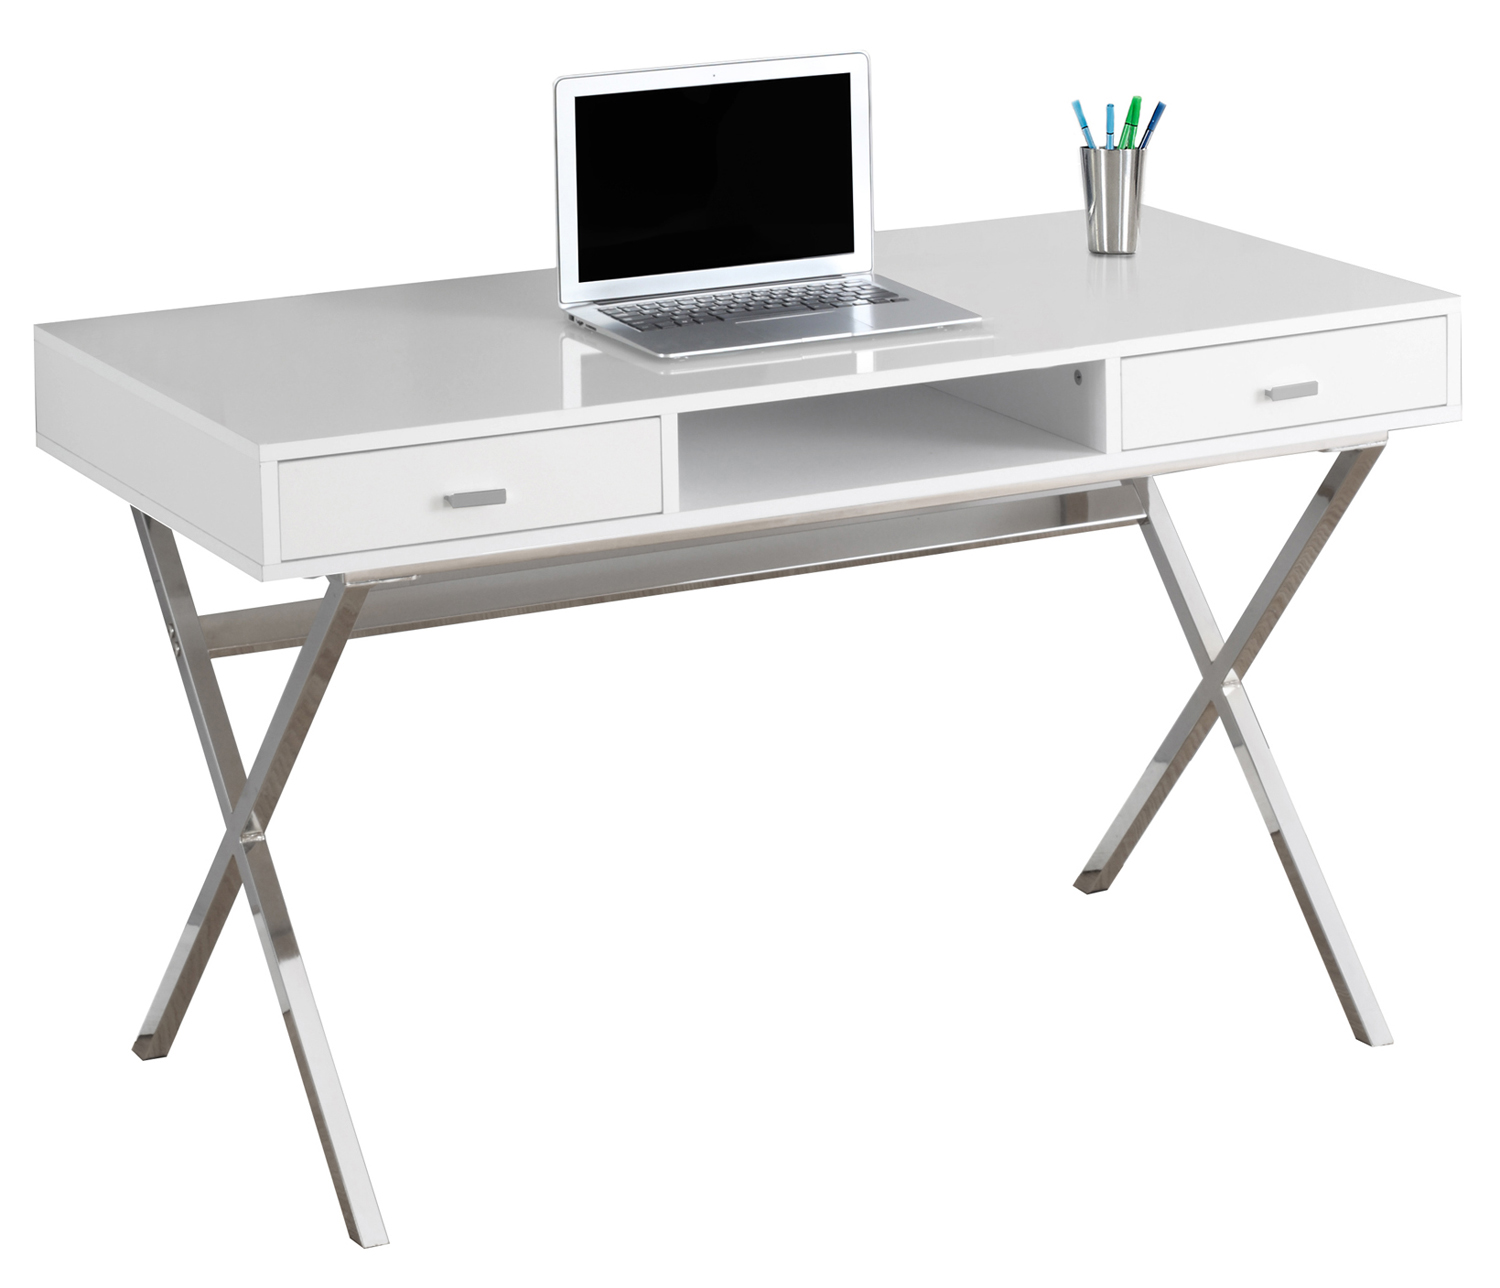 "48"" Computer Desk with Storage Drawers, Chrome Metal and Glossy White"